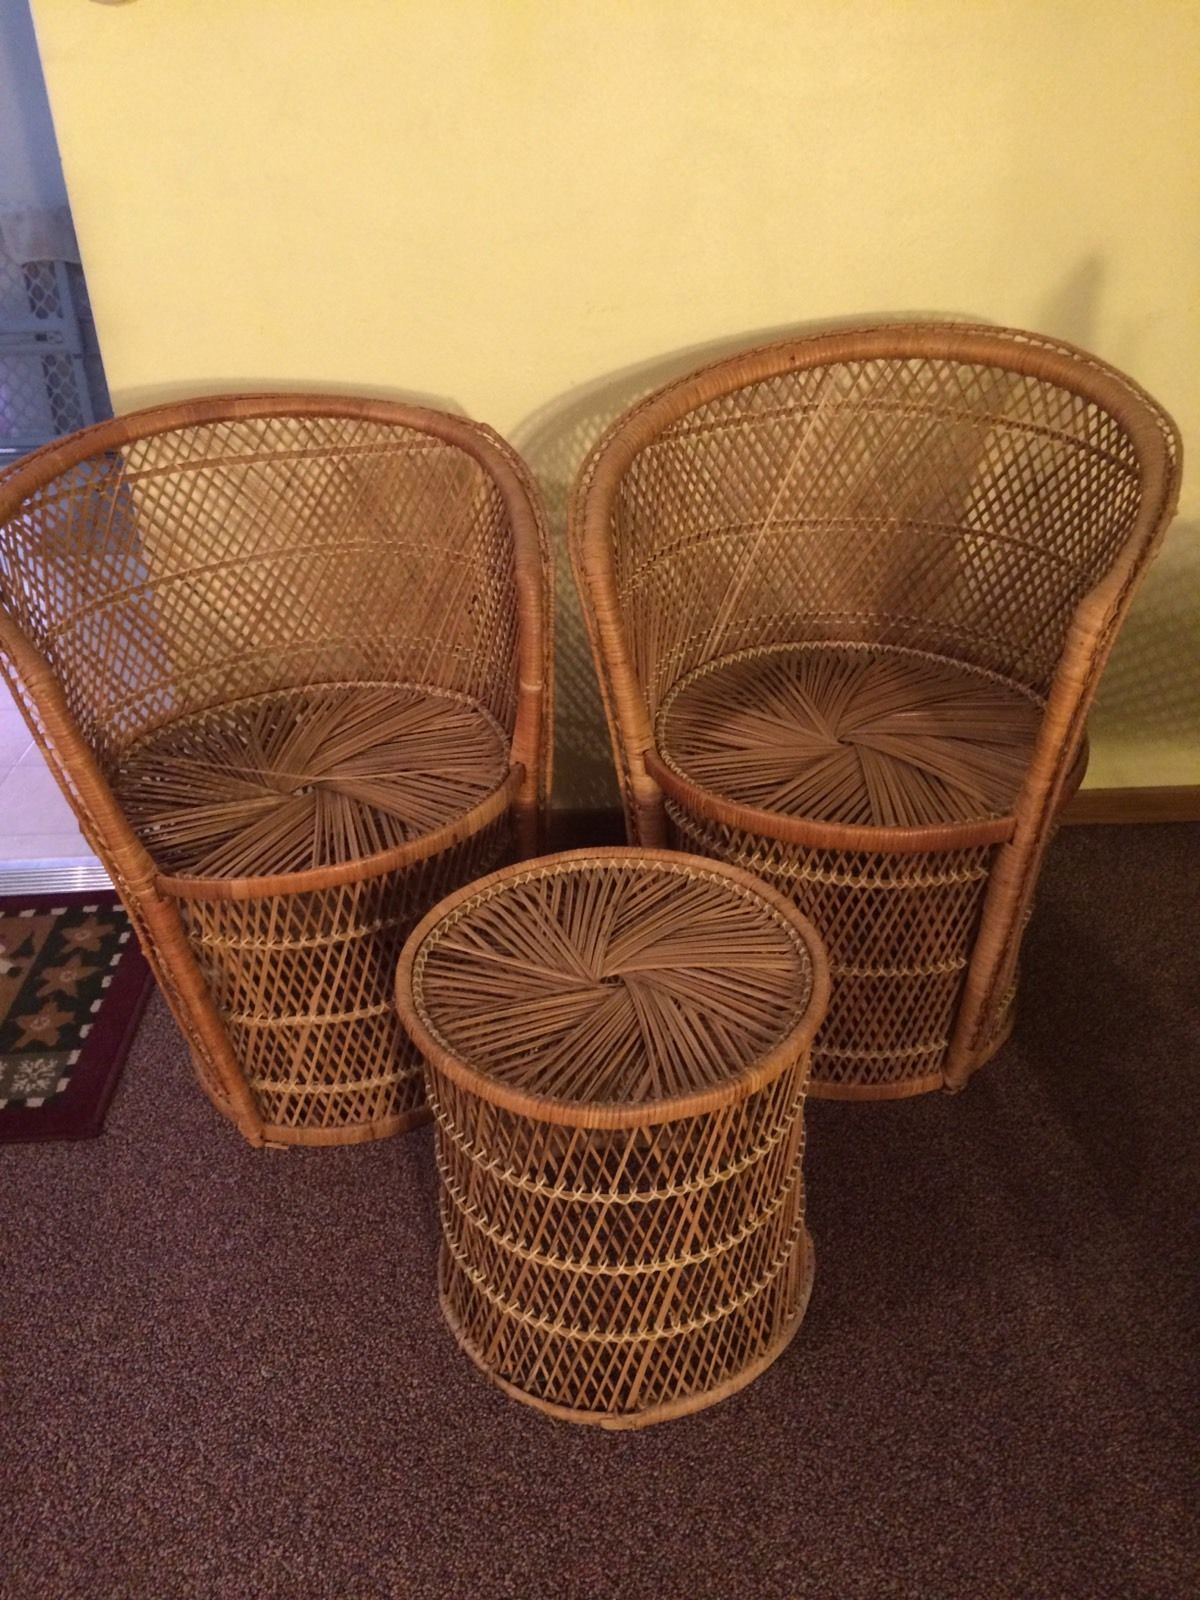 Wicker Accent Chairs.Vintage Peacock Wicker Rattan Fan 70 S Accent Chair S Table Price